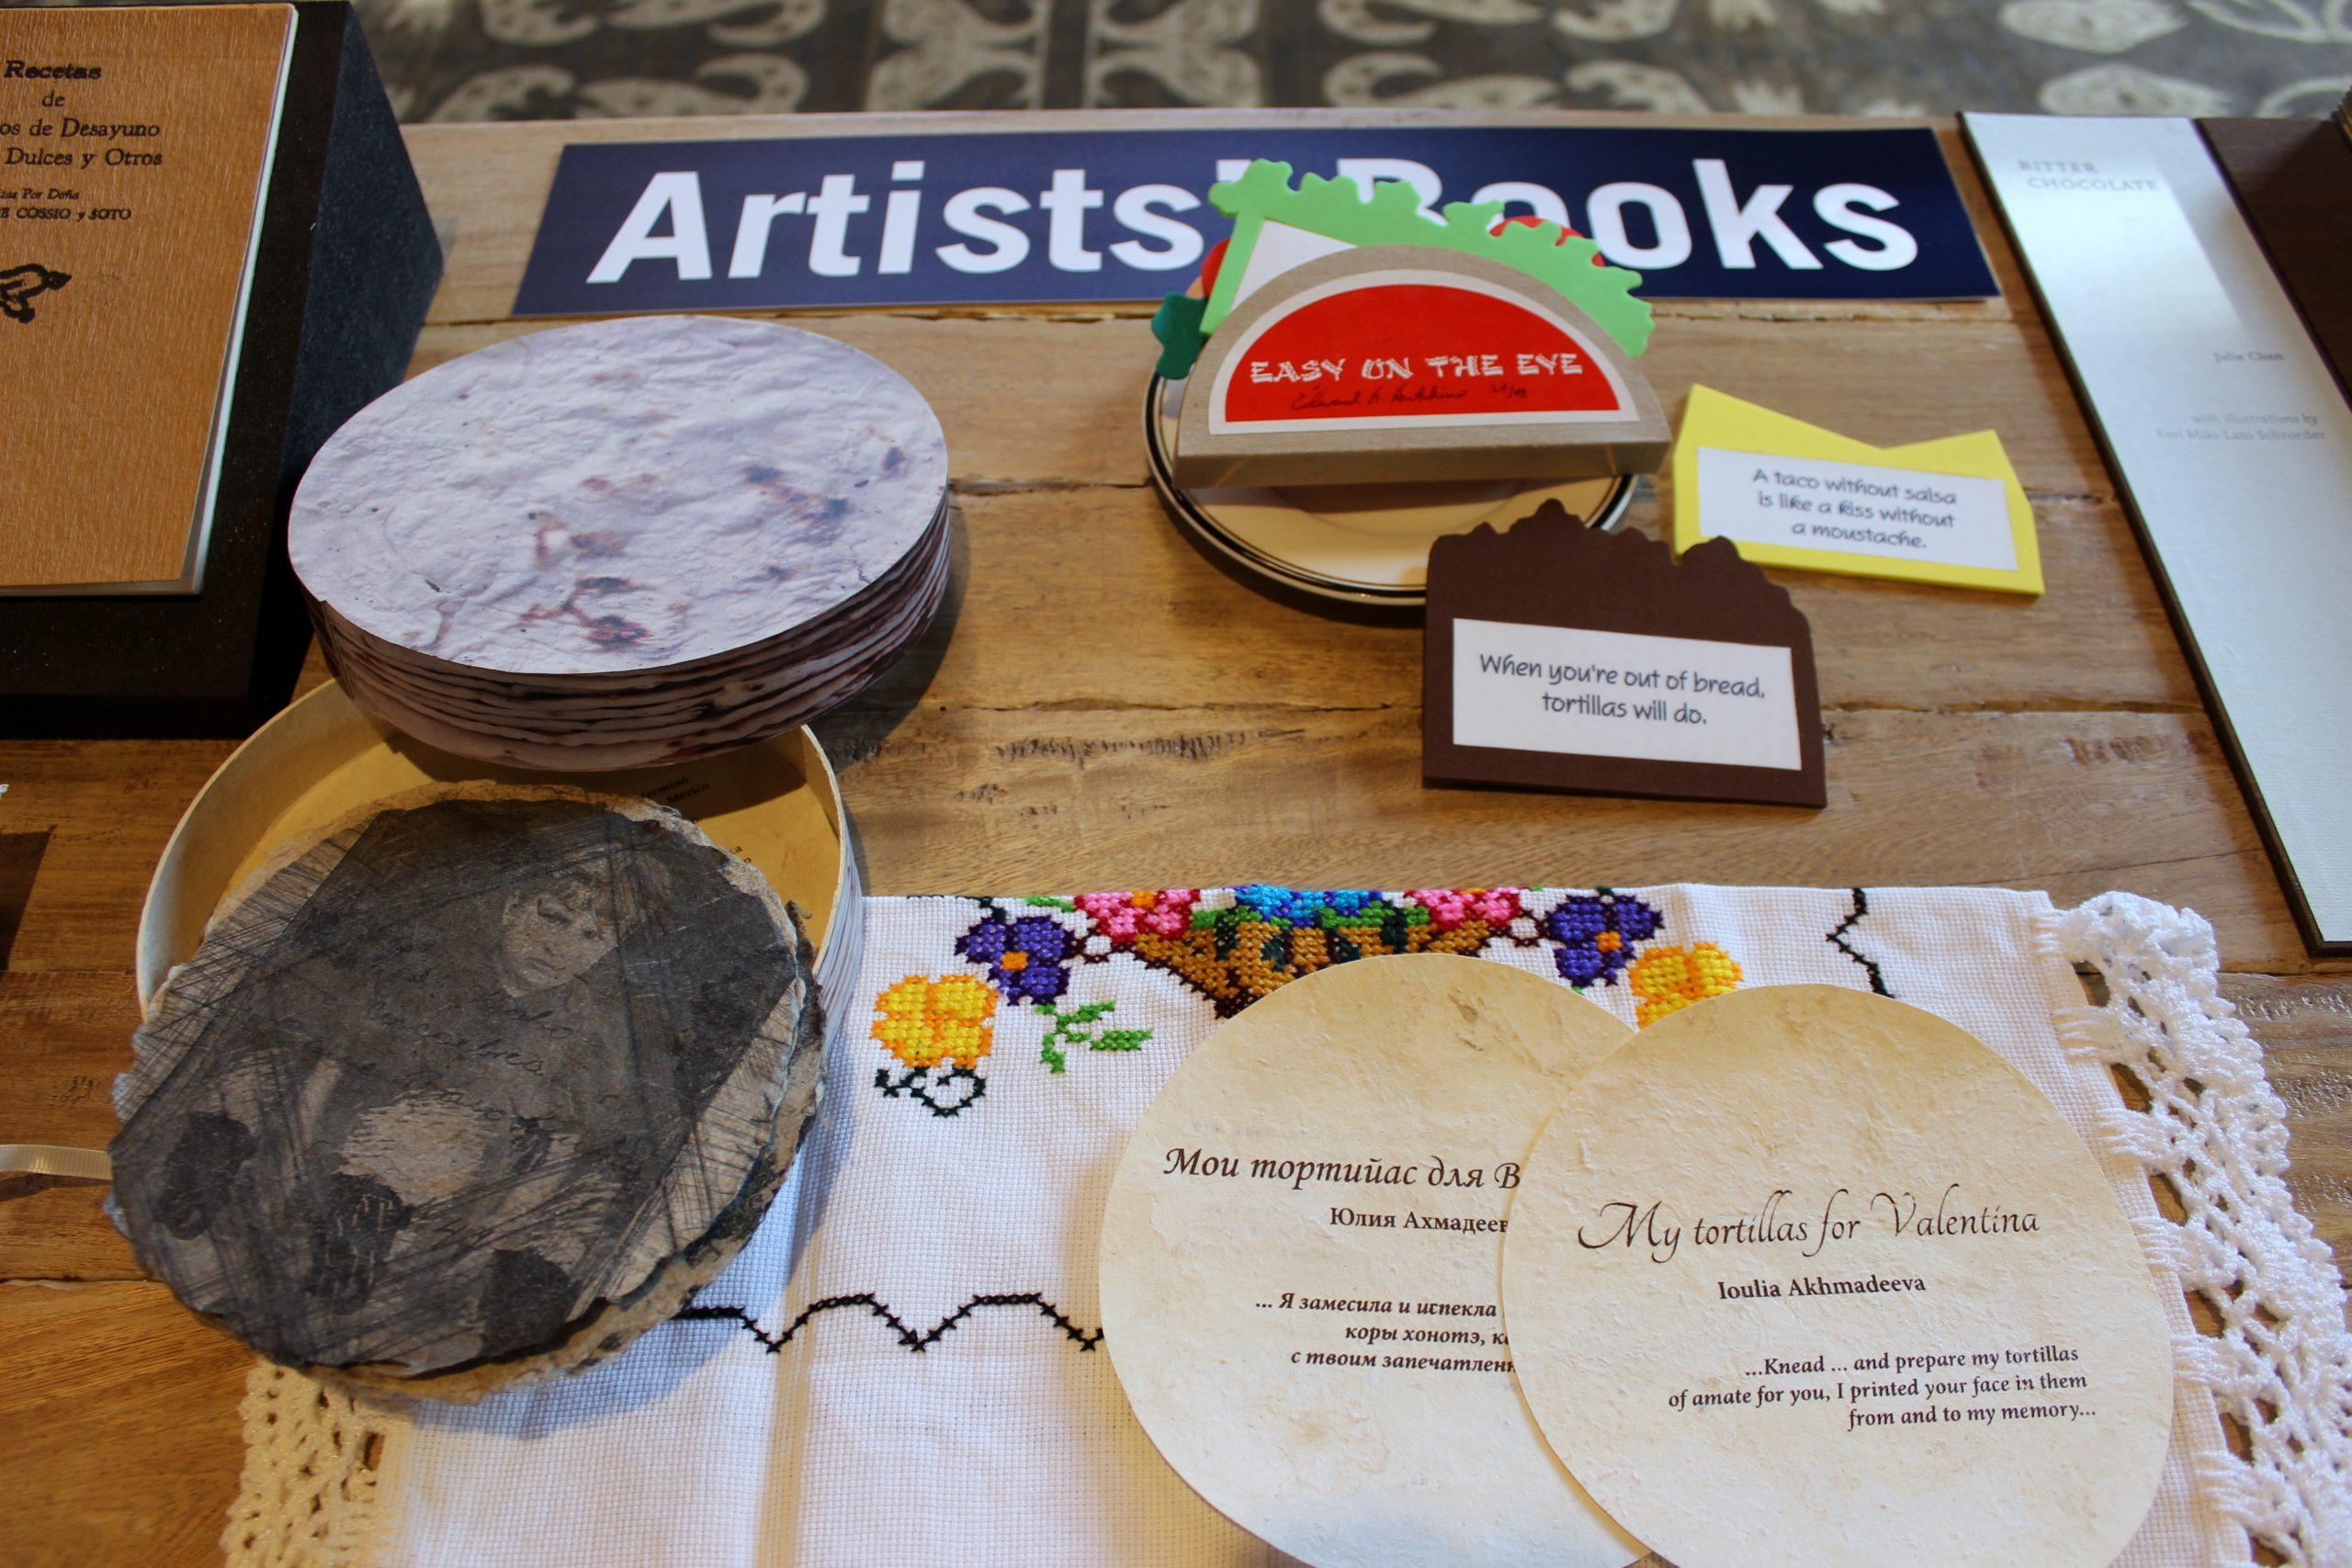 A book (in Russian and English) shaped like tortillas and a book crafted like a taco are part of the special collection.